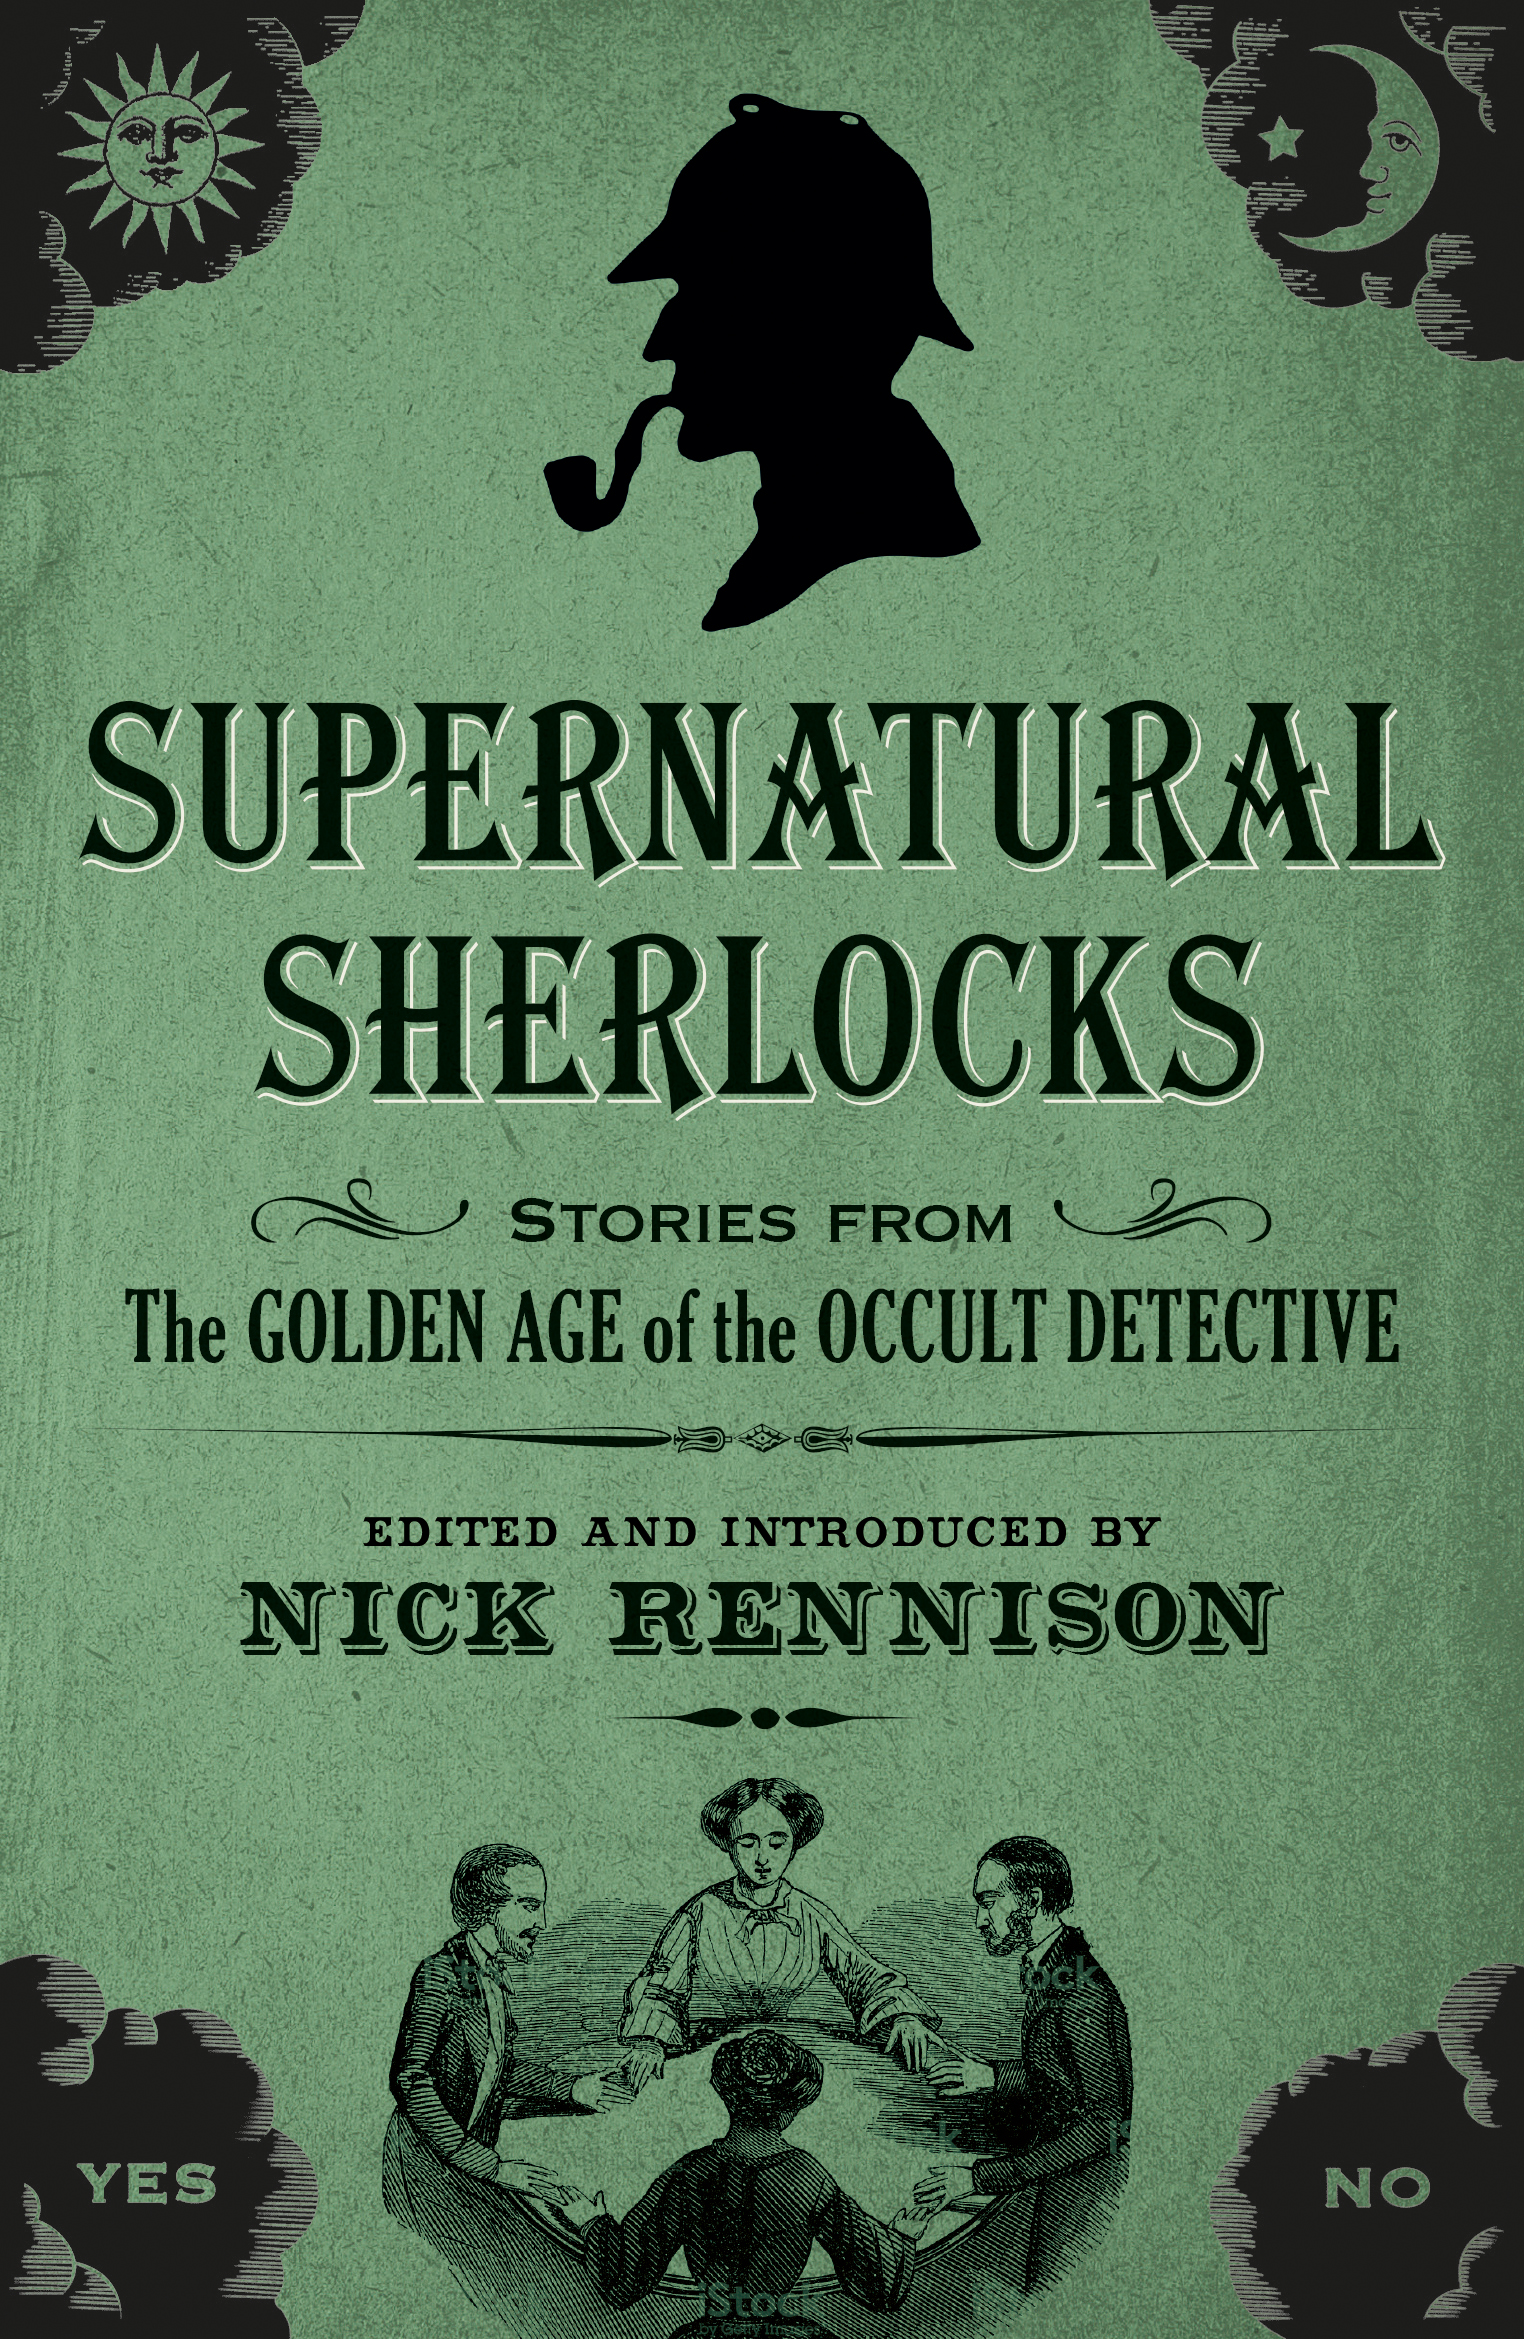 Supernatural Sherlocks - No Exit Press